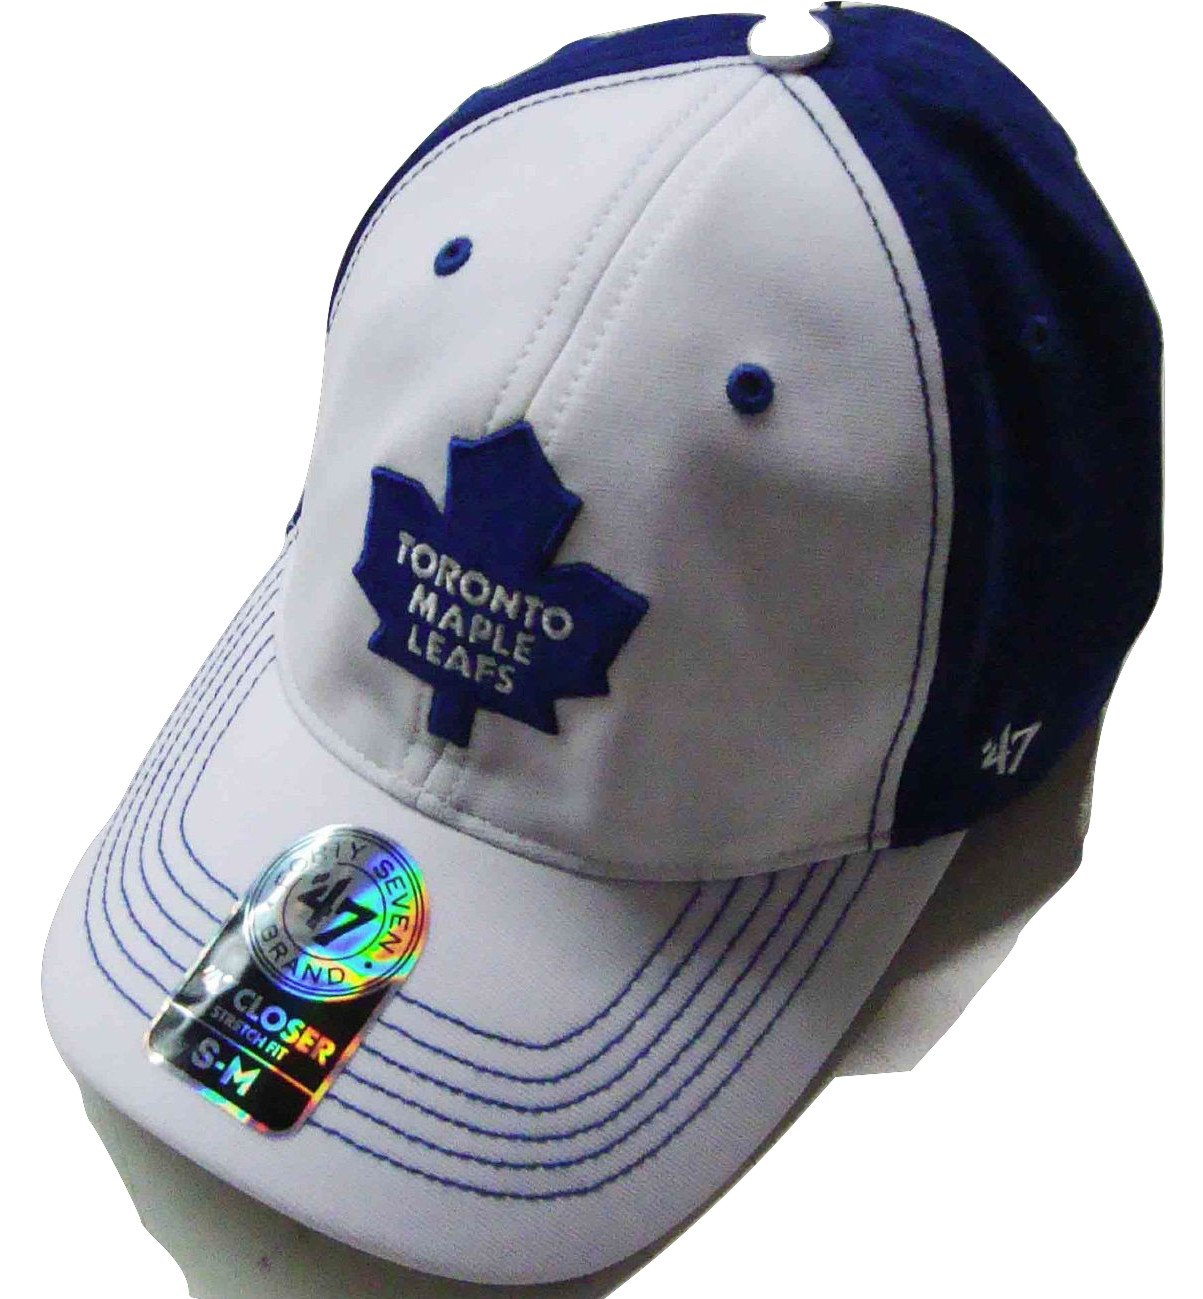 '47 Brand NHL Toronto Maple Leafs 2015 Carson Closer Flexfit Hat Cap White/Blue Large/X-Large '47 Brand